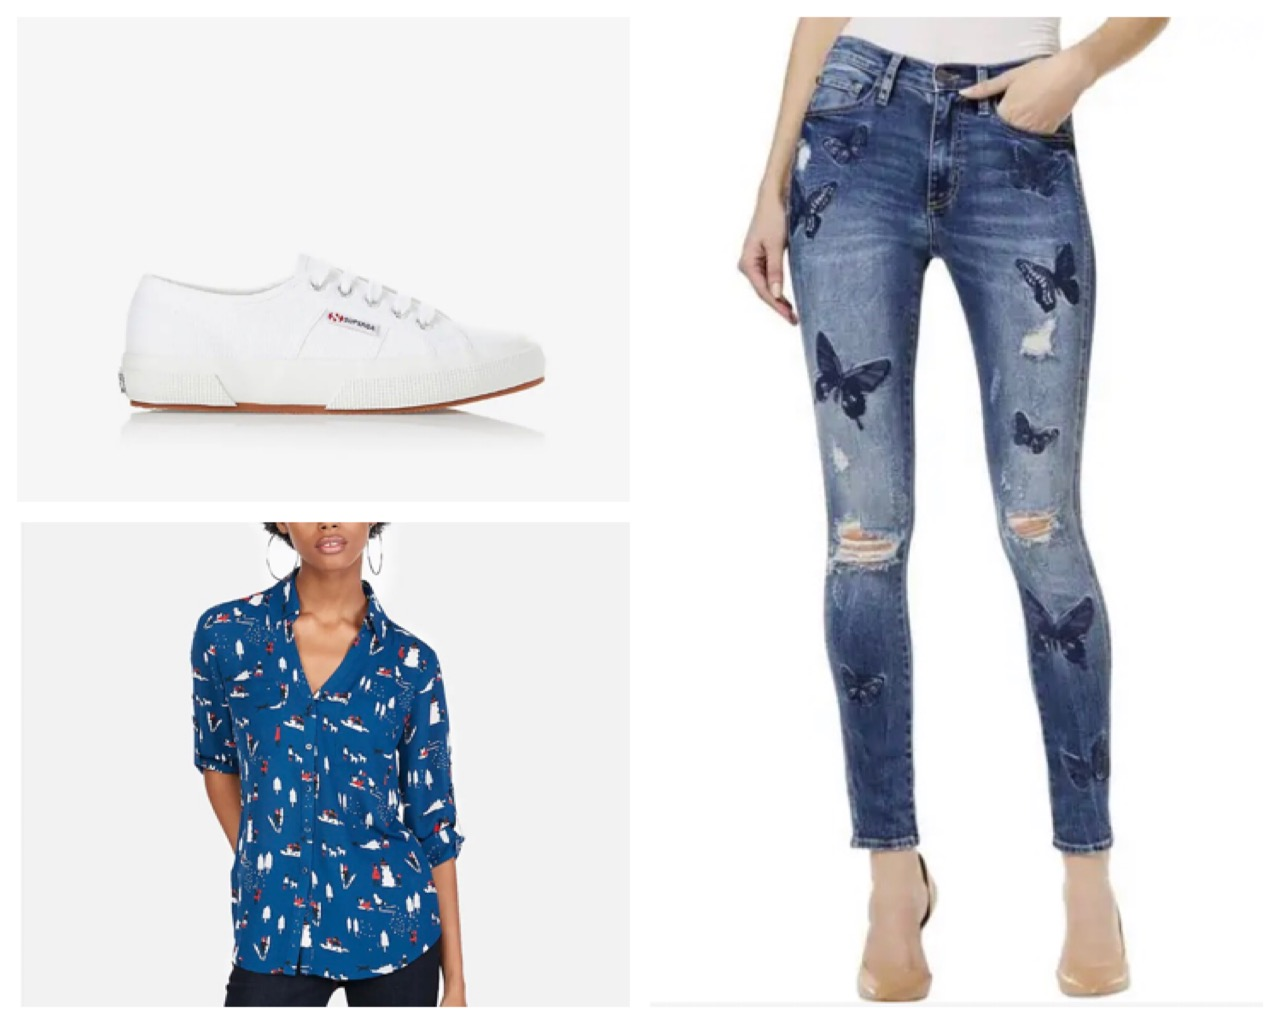 Butterfly jeans ($118.00) with some classic white Superga Sneakers ($65.00) and a printed shirt ($59.90)- typical Zoey Johnson! All available on our app